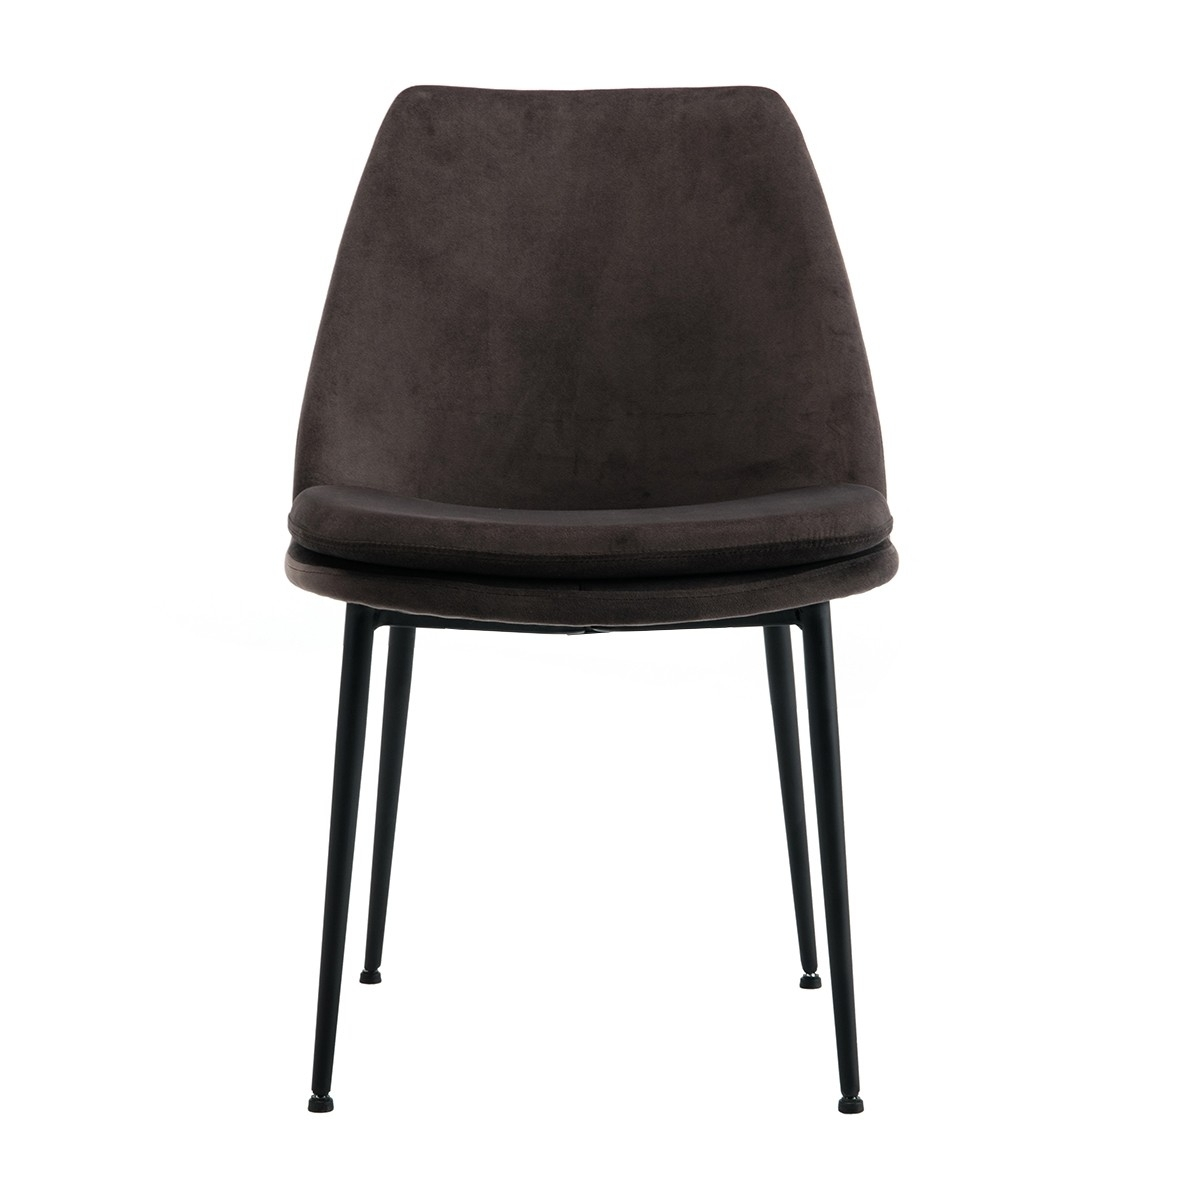 Inspiration about Recent Life Interiors – Ashton Velvet Dining Chair (Black) – Modern Regarding Dark Olive Velvet Iron Dining Chairs (#1 of 20)